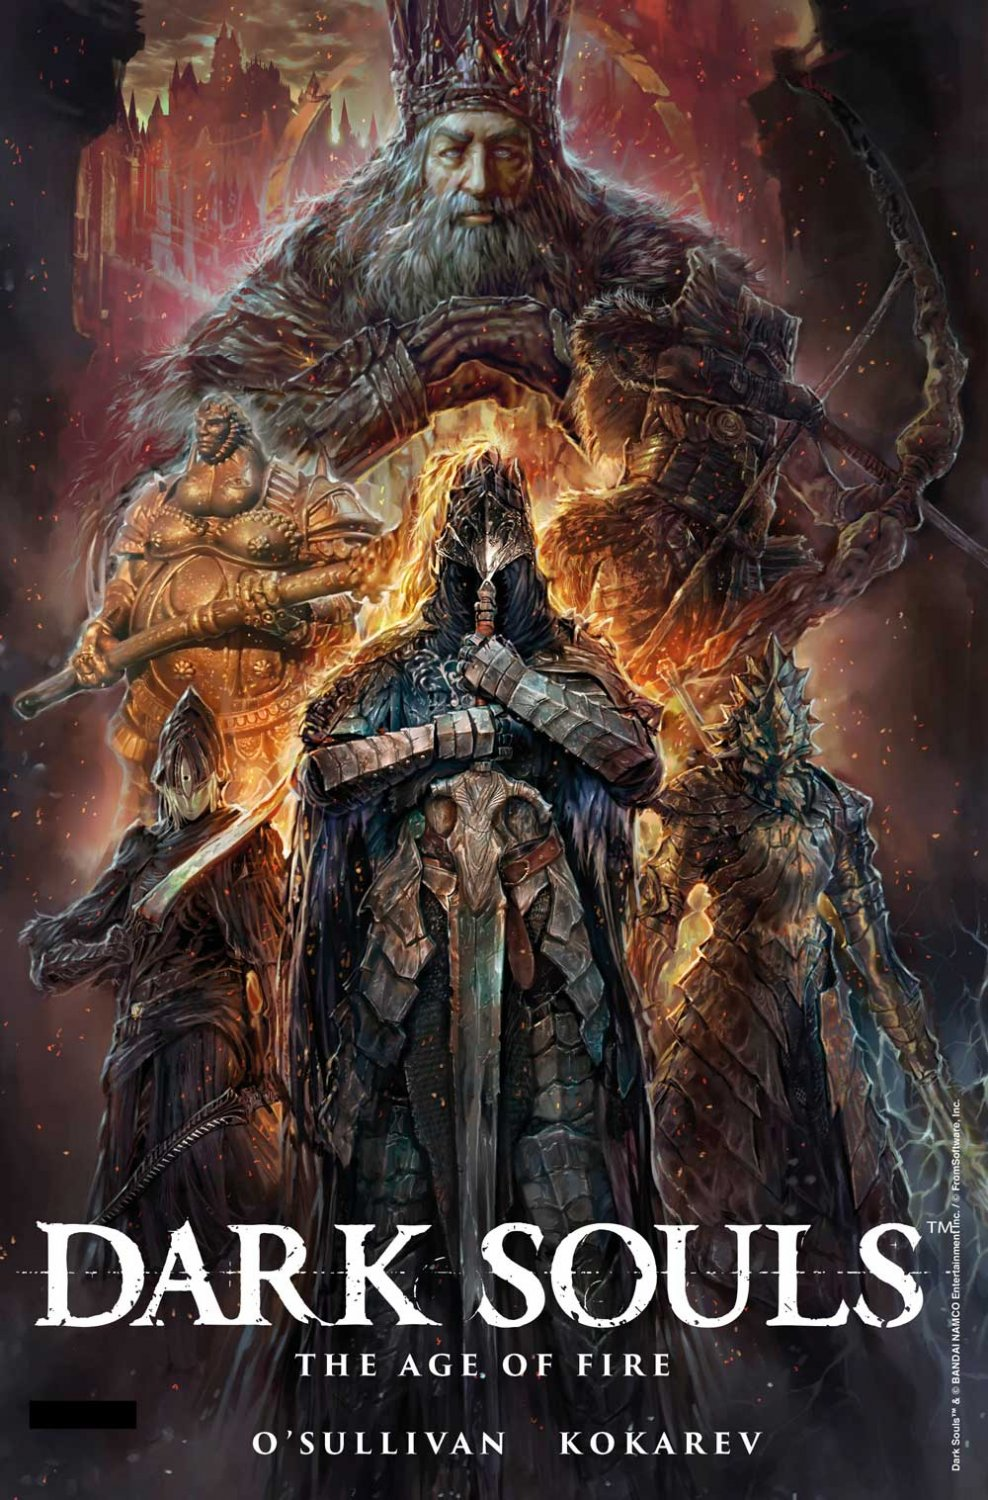 dark-souls-remastered-pc_ps4_xbox-one_nintendo-switch_317118.jpg